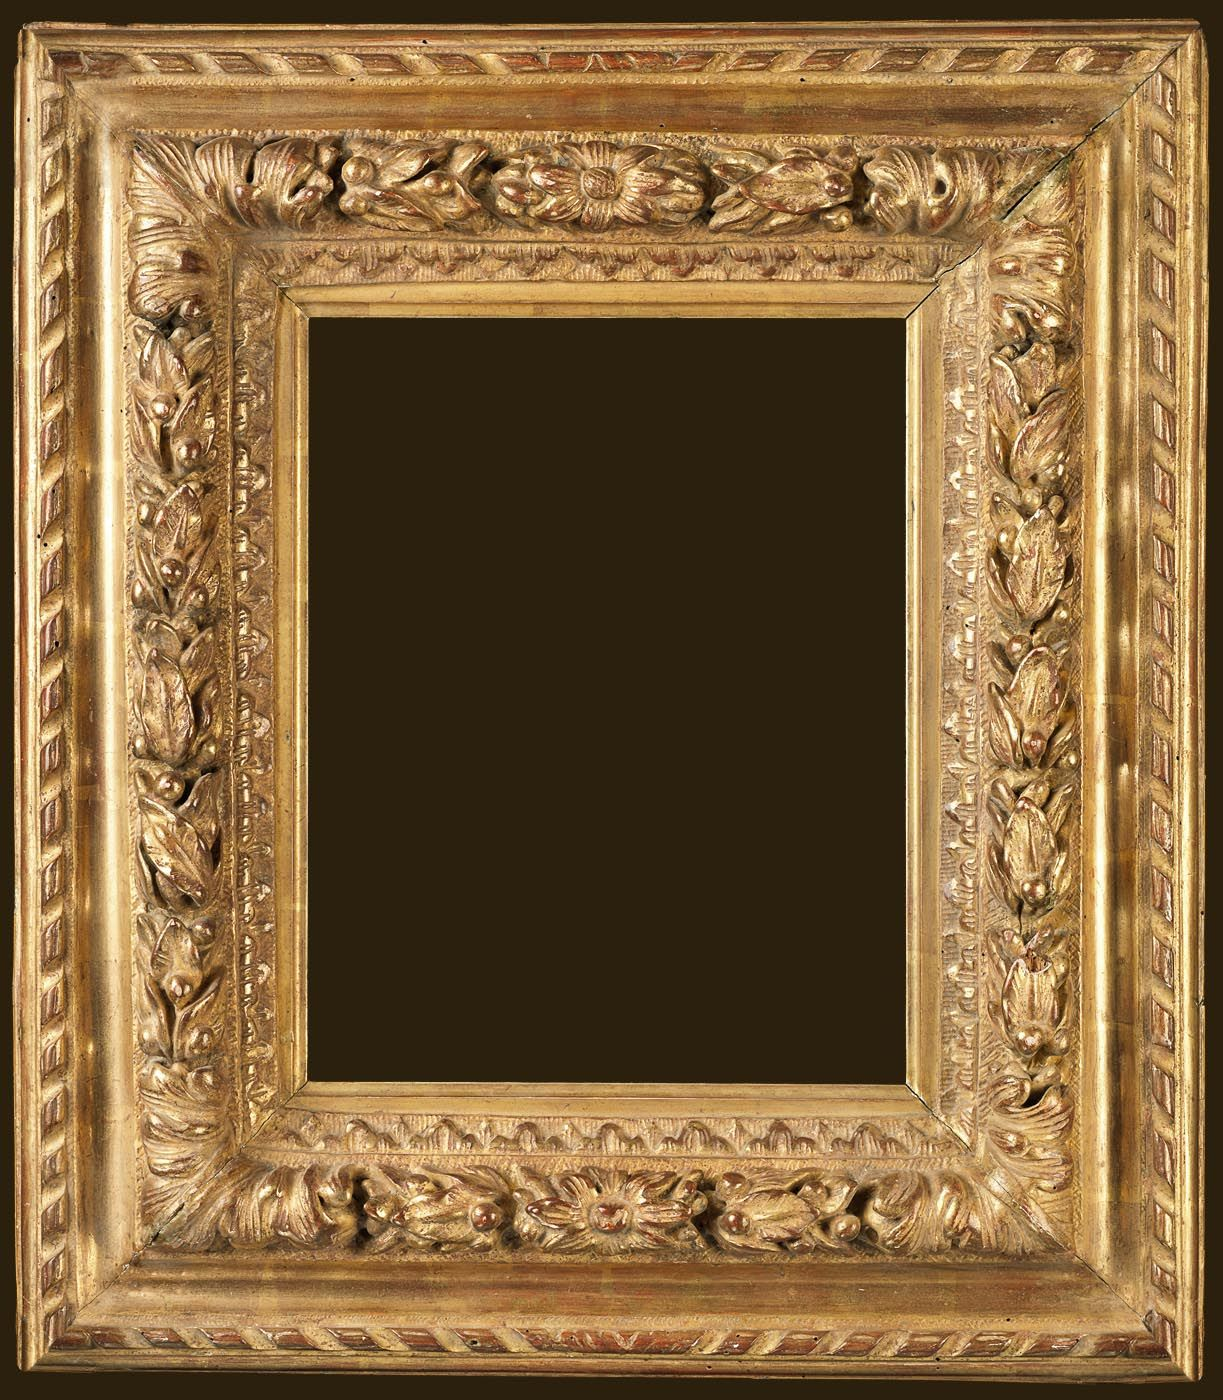 Louis Xiii 19th Century 14 3 4 X 11 1 2 X 5 Antique Picture Frames Antique Frames Painting Frames